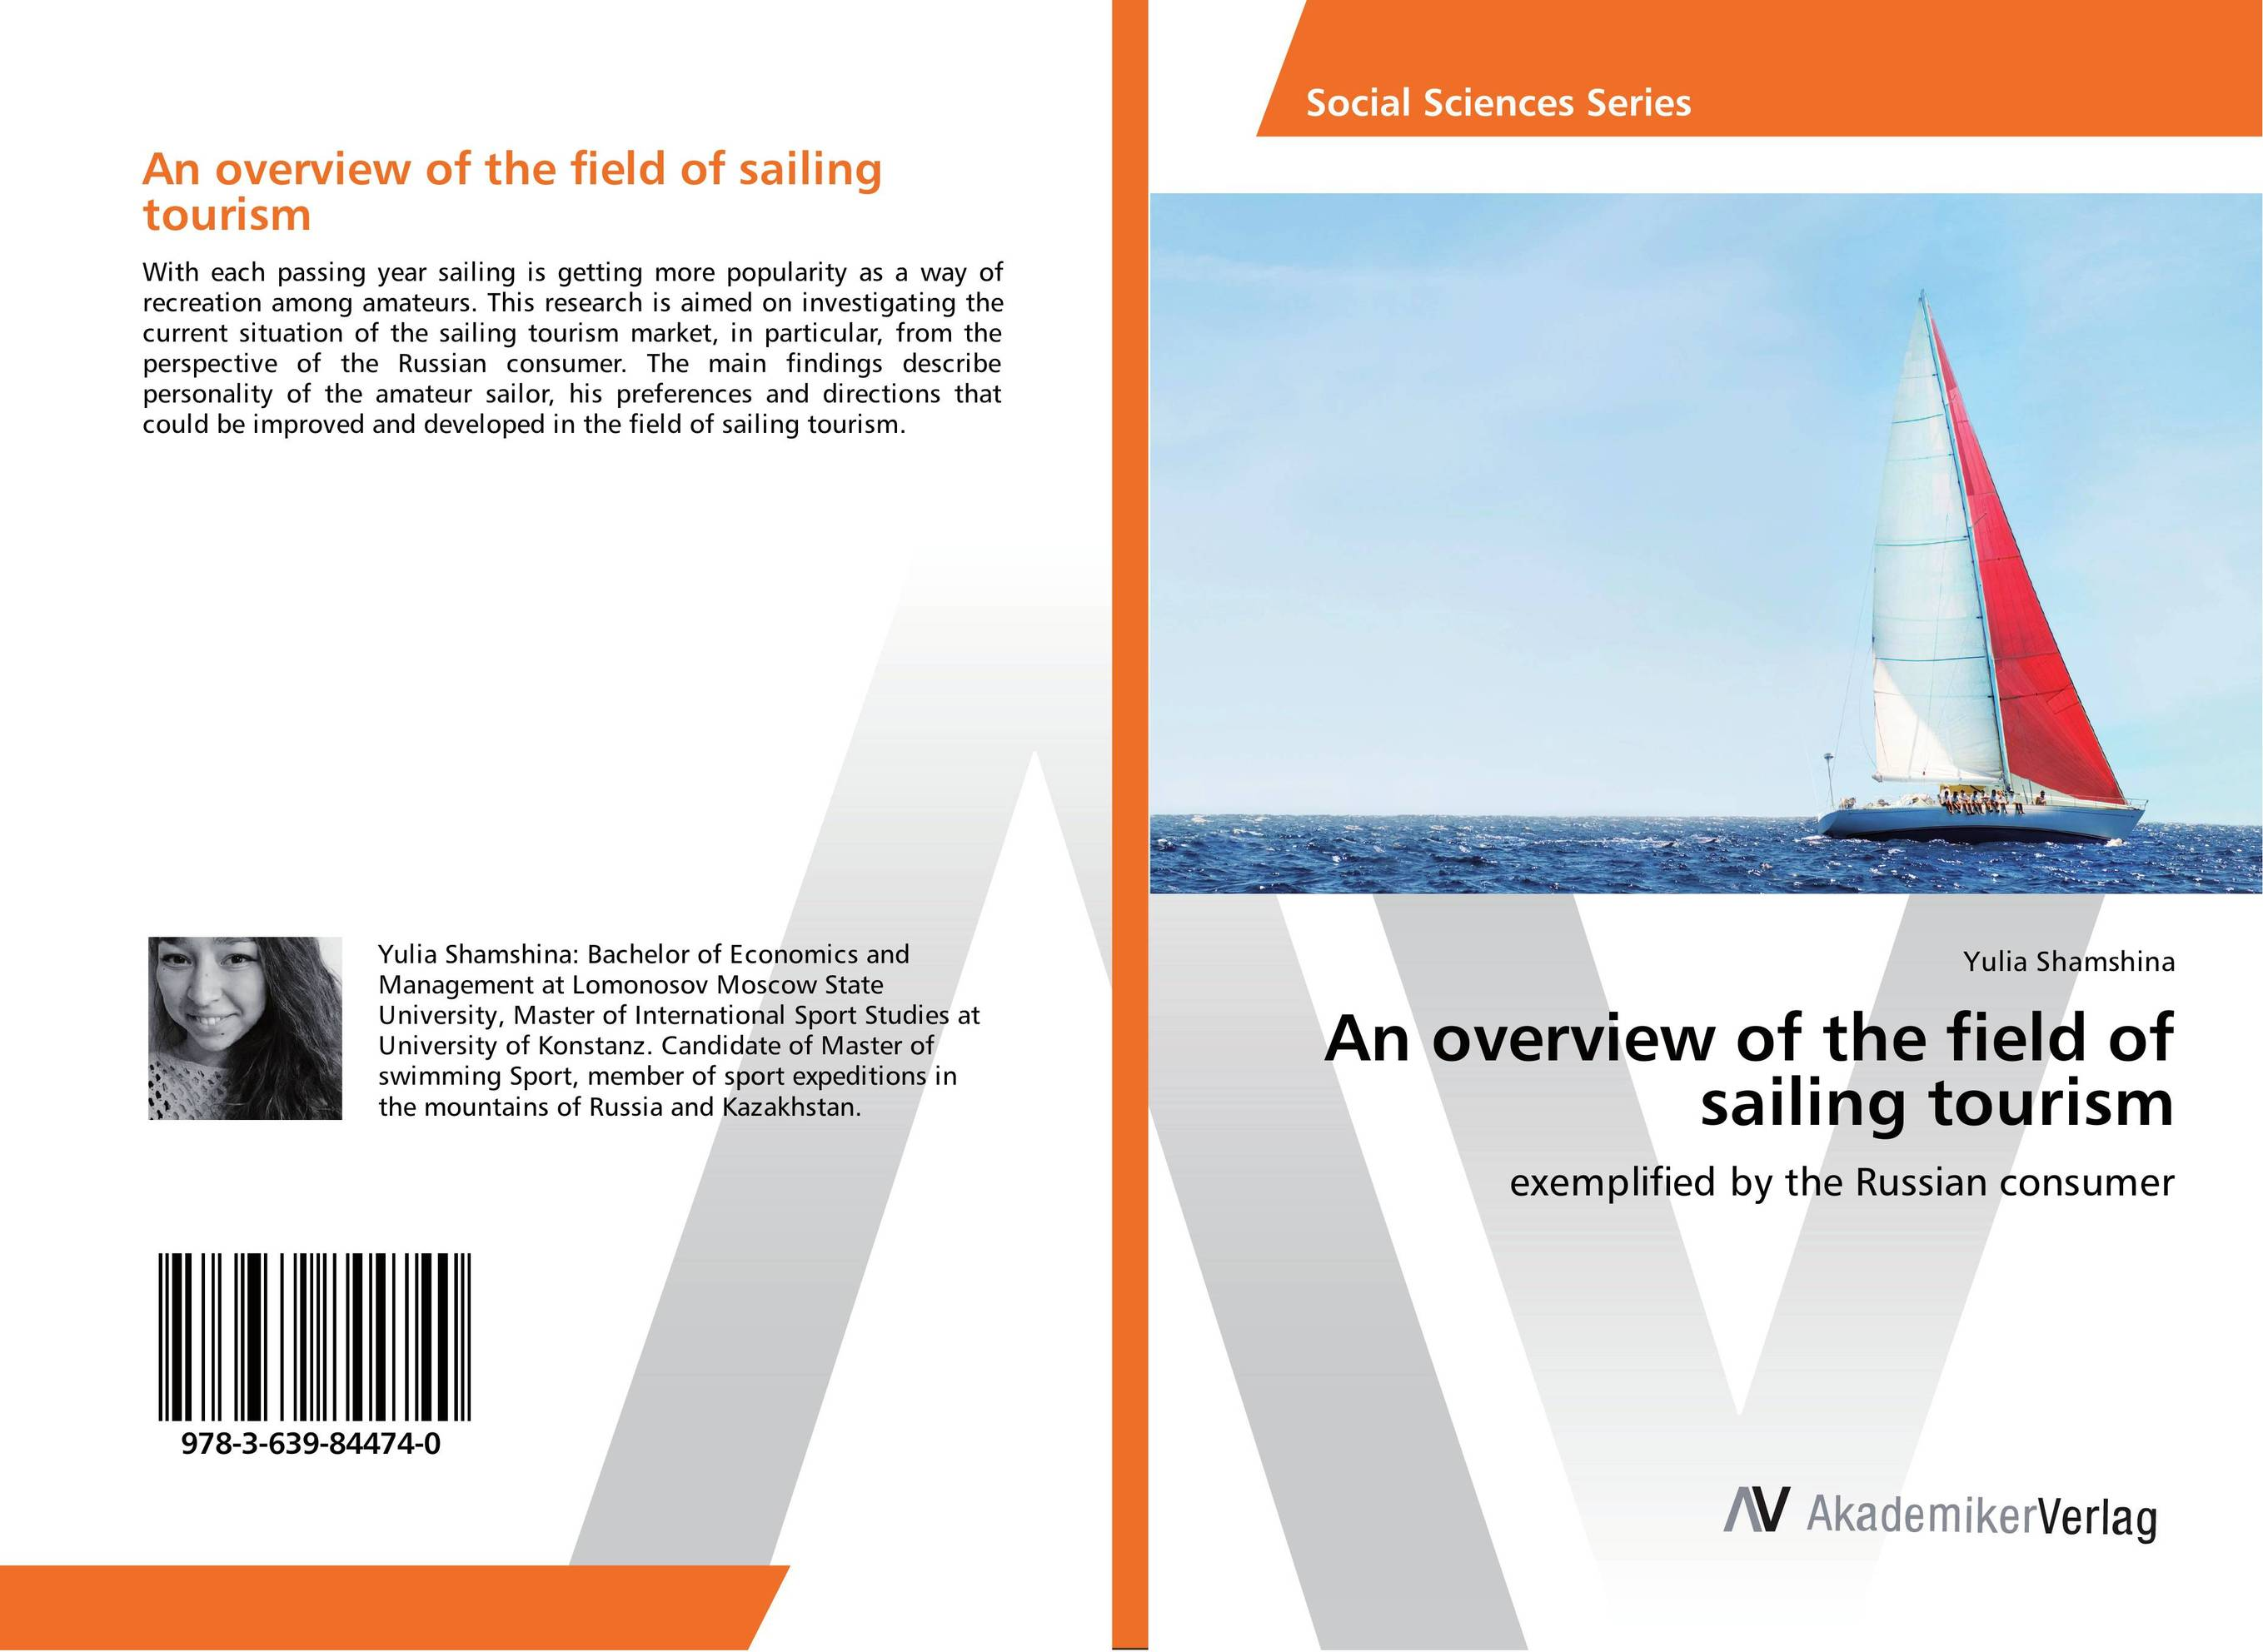 An overview of the field of sailing tourism overview of carcinoma breast an indian prespective